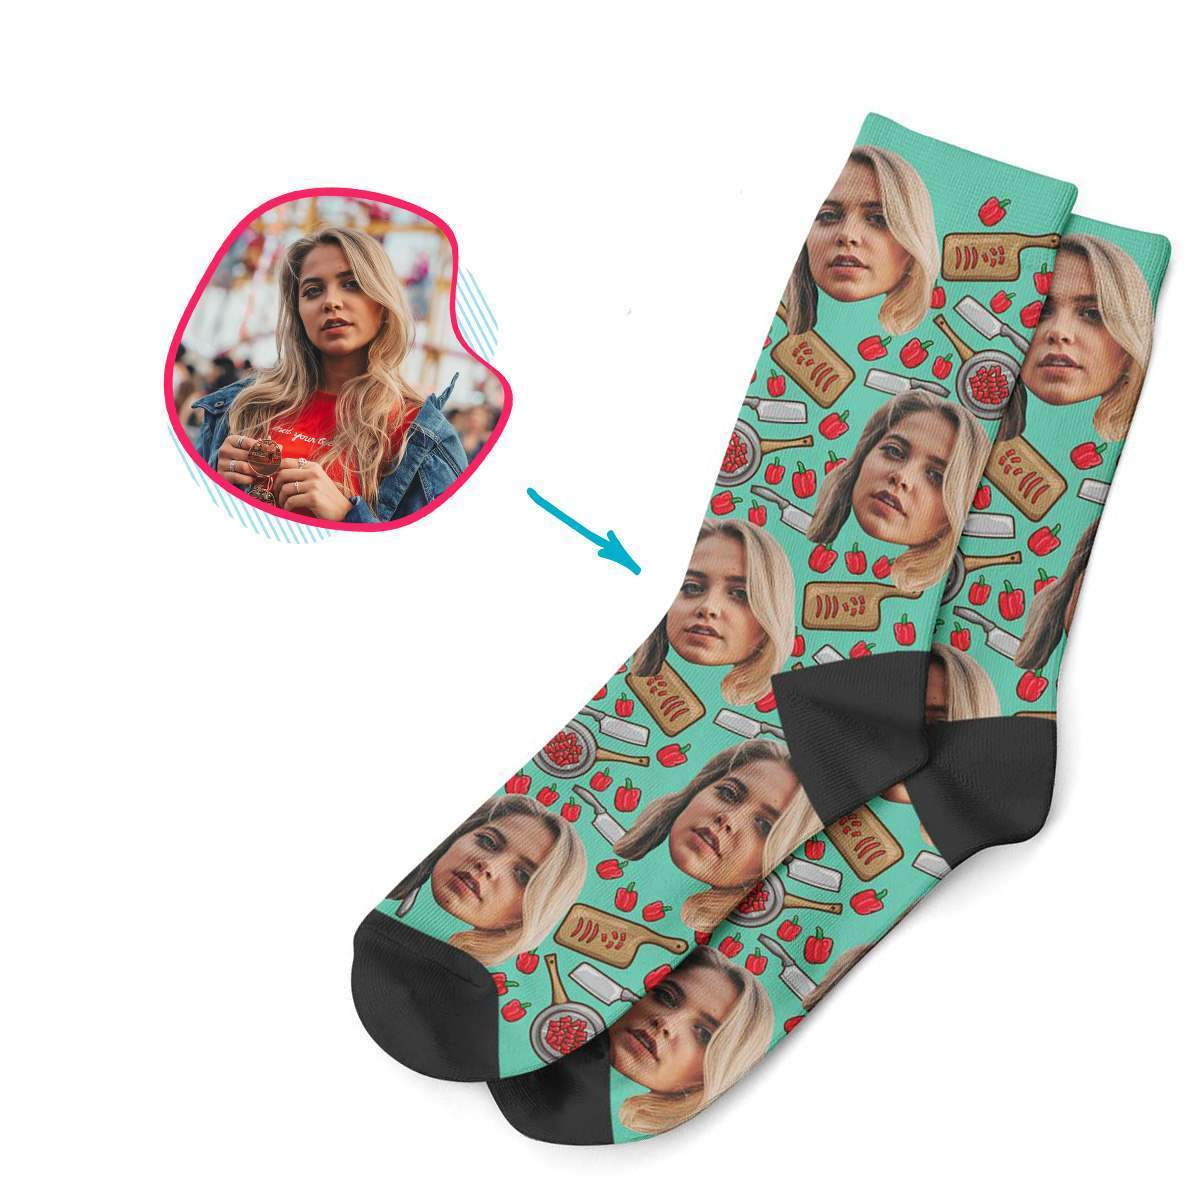 mint Сooking socks personalized with photo of face printed on them